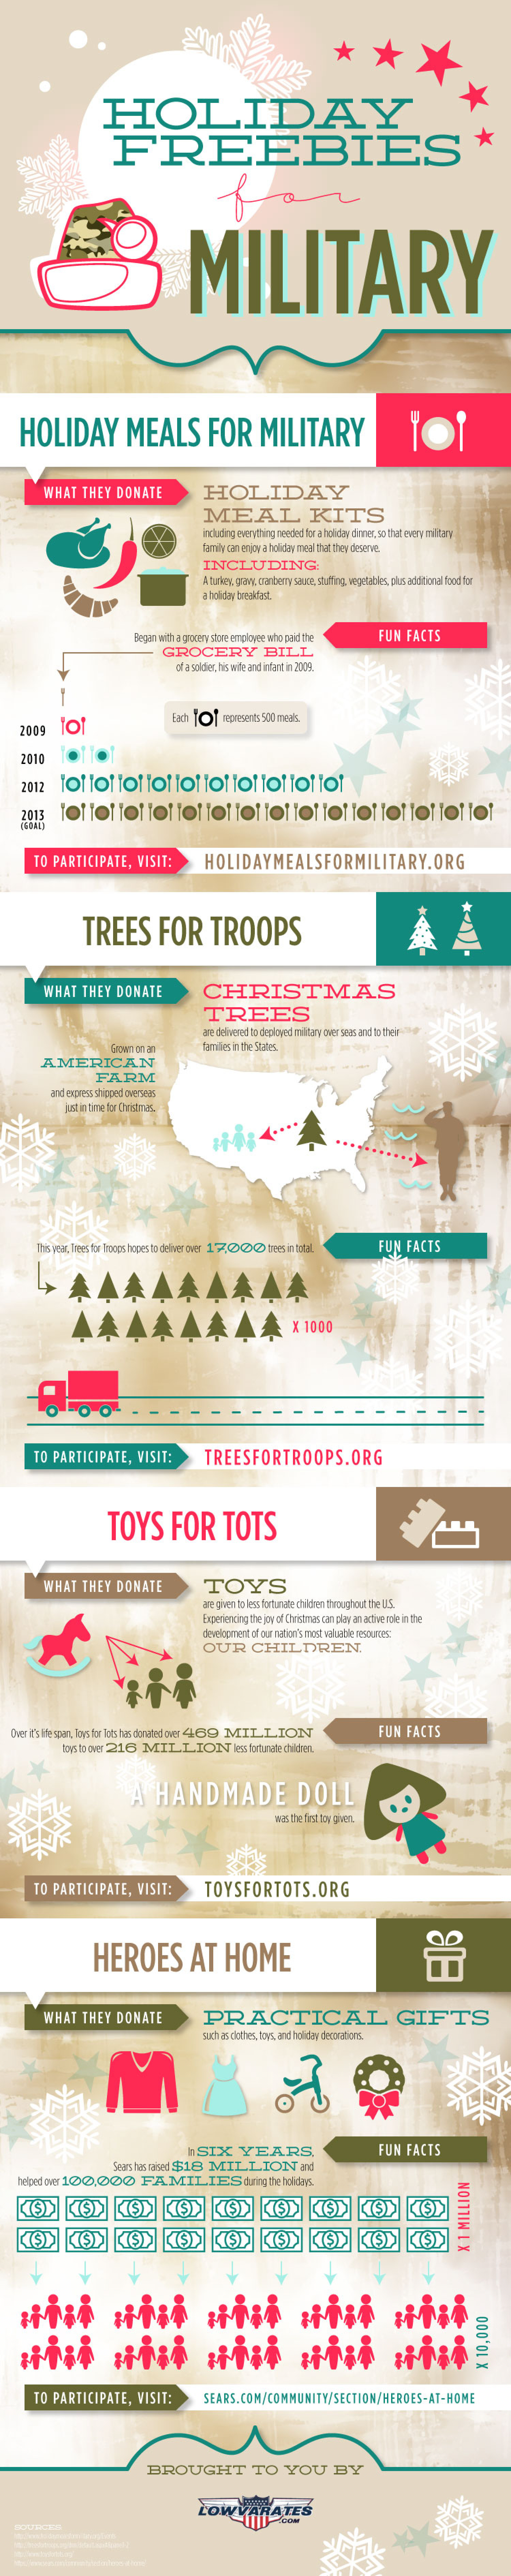 Holiday Freebies for Military Members Infographic